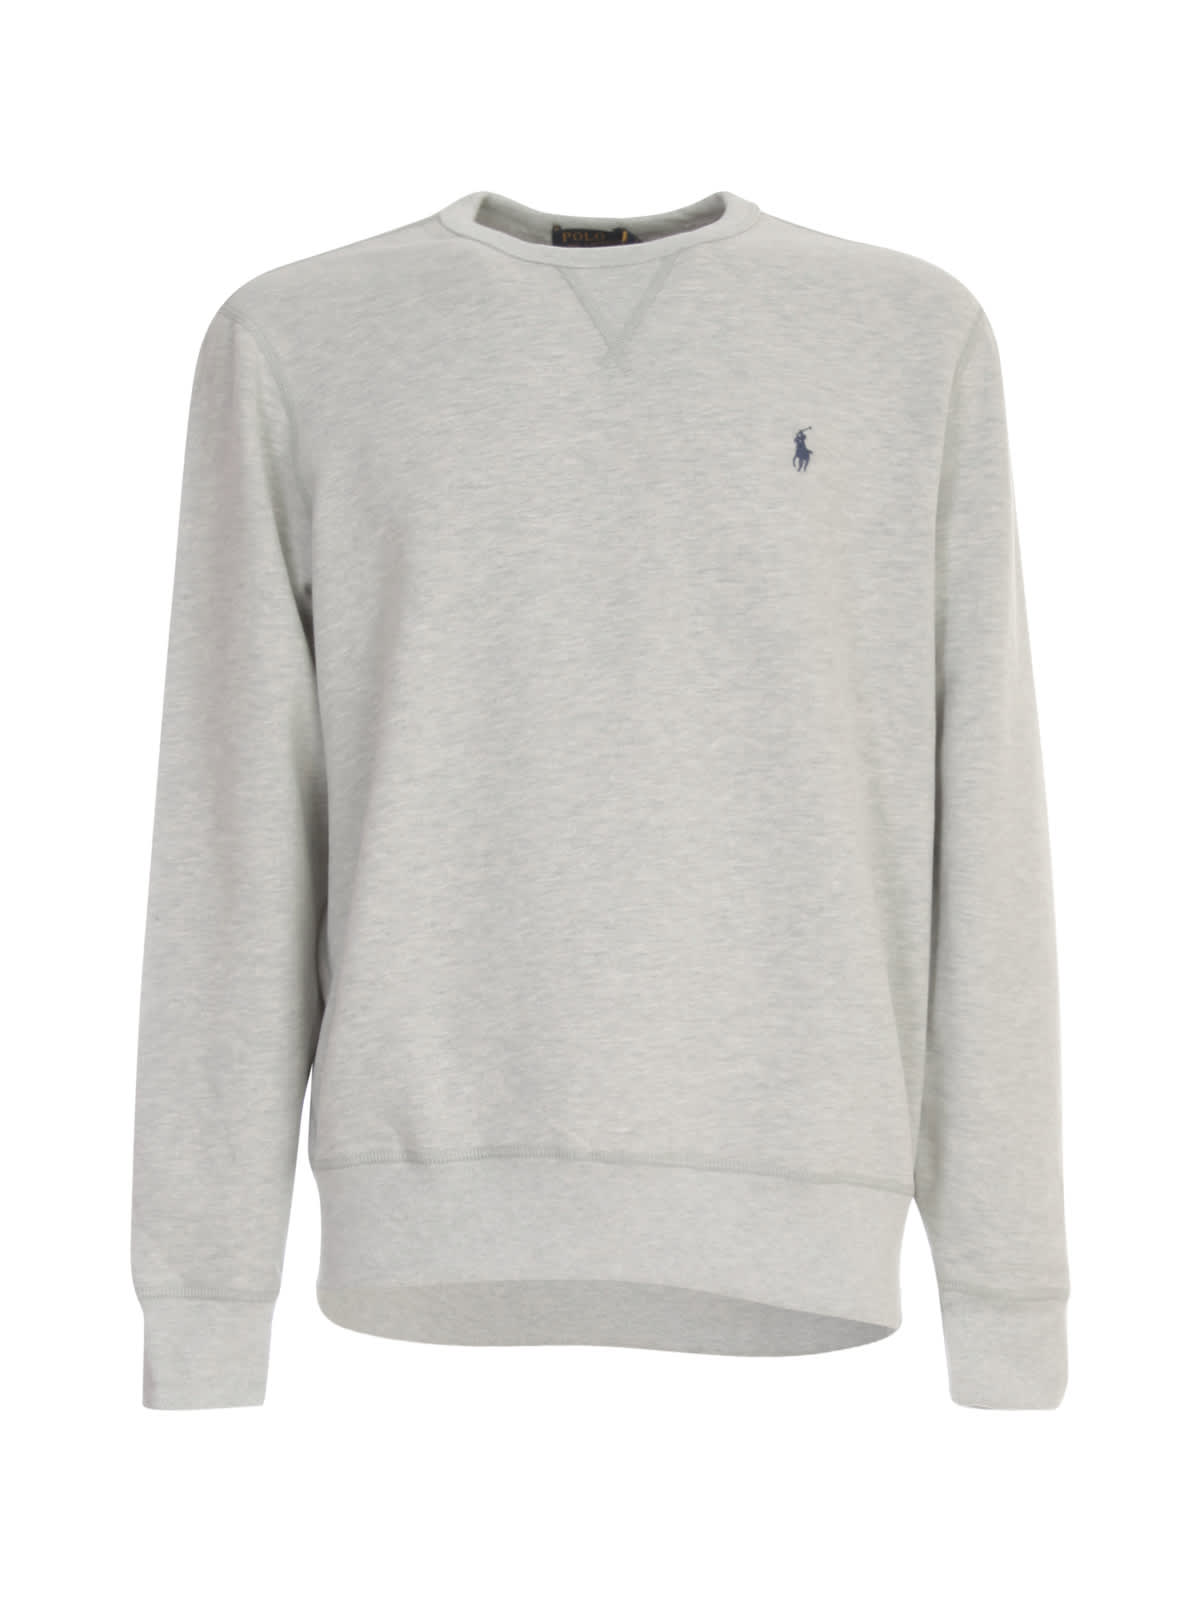 Polo Ralph Lauren Rl Fleece Crew Neck Sweatshirt